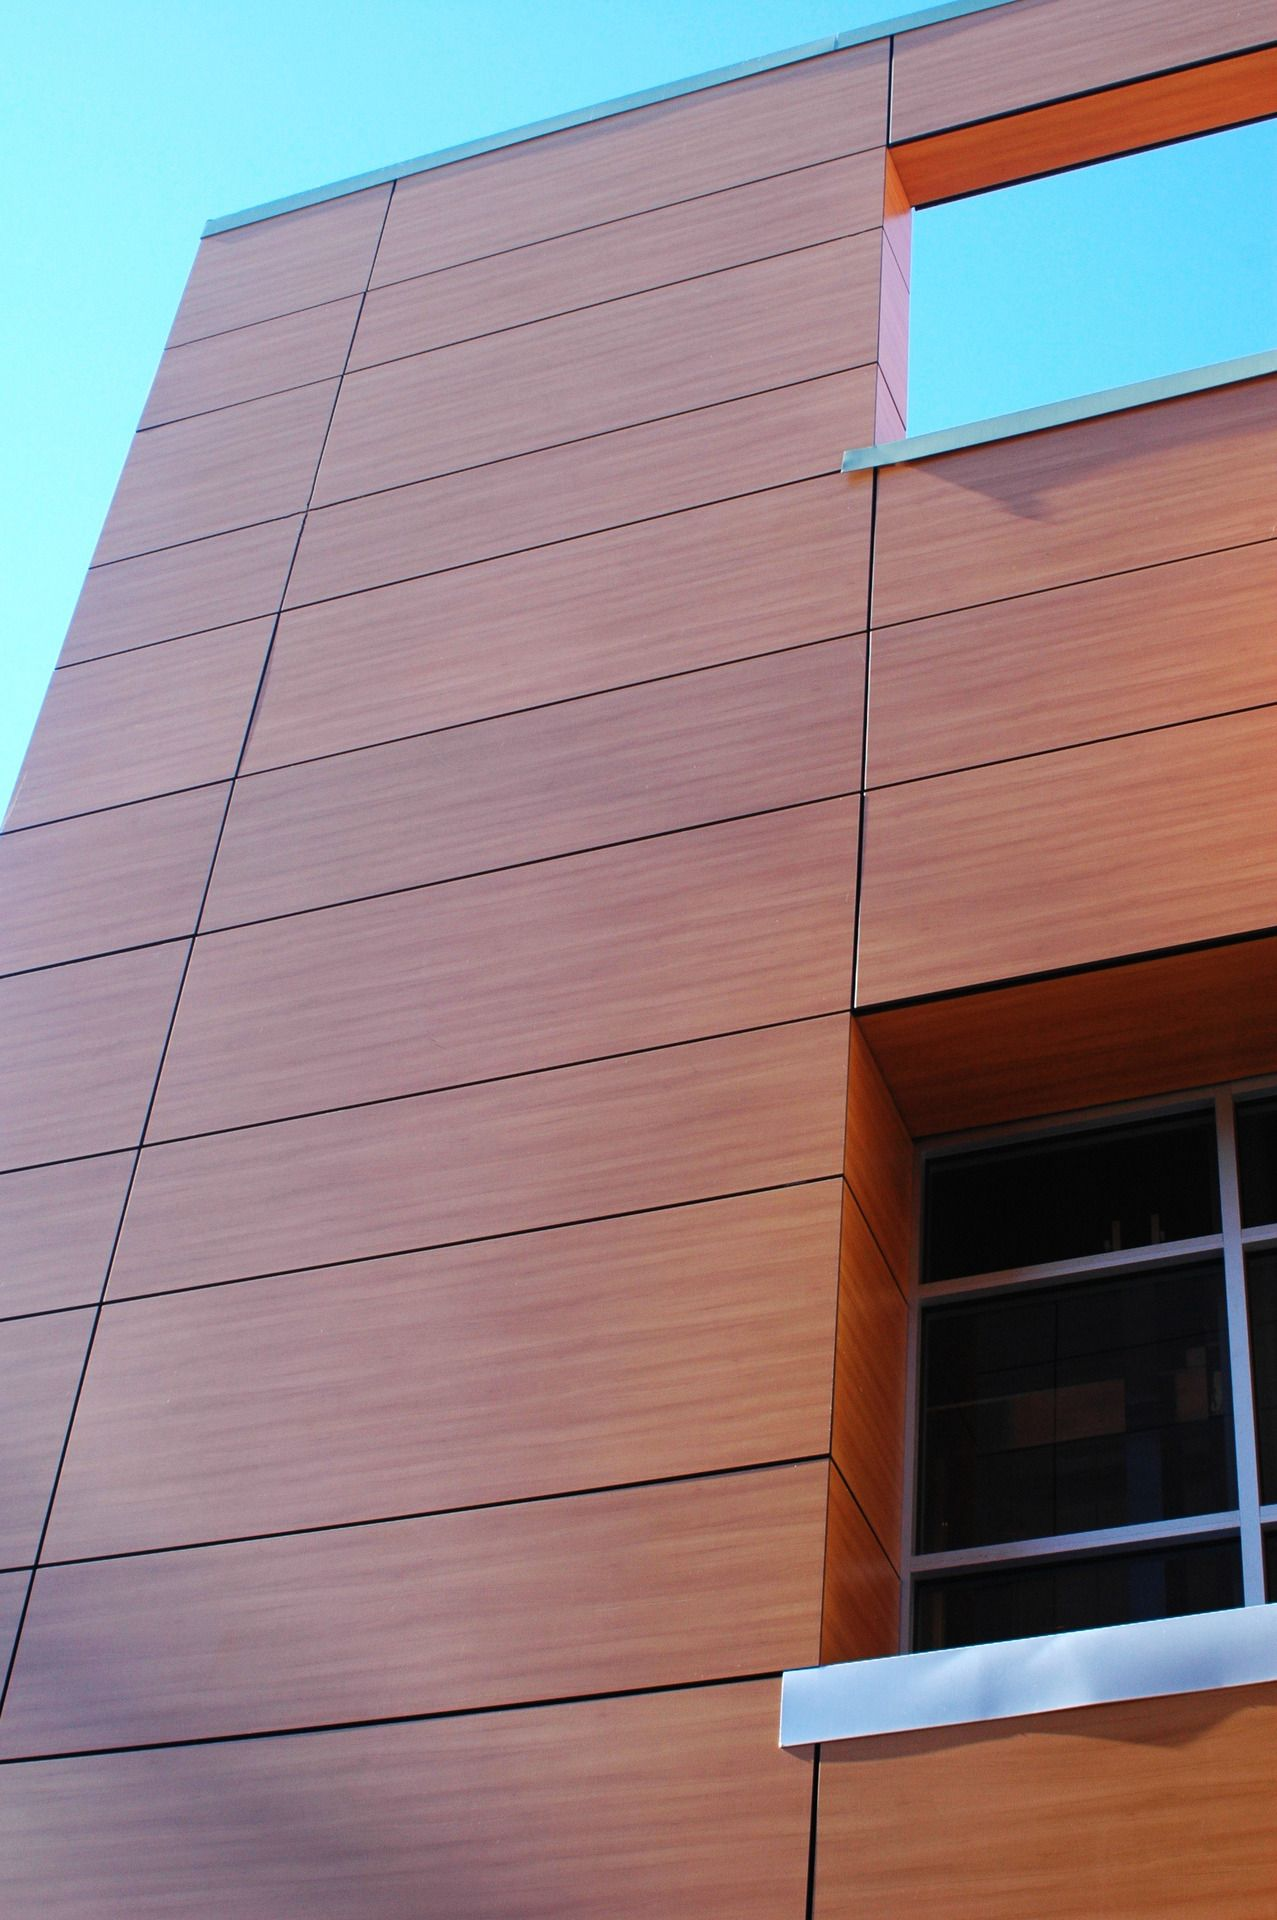 Exterior Cladding Systems: Like Much Of Northern California, The College Of Marin